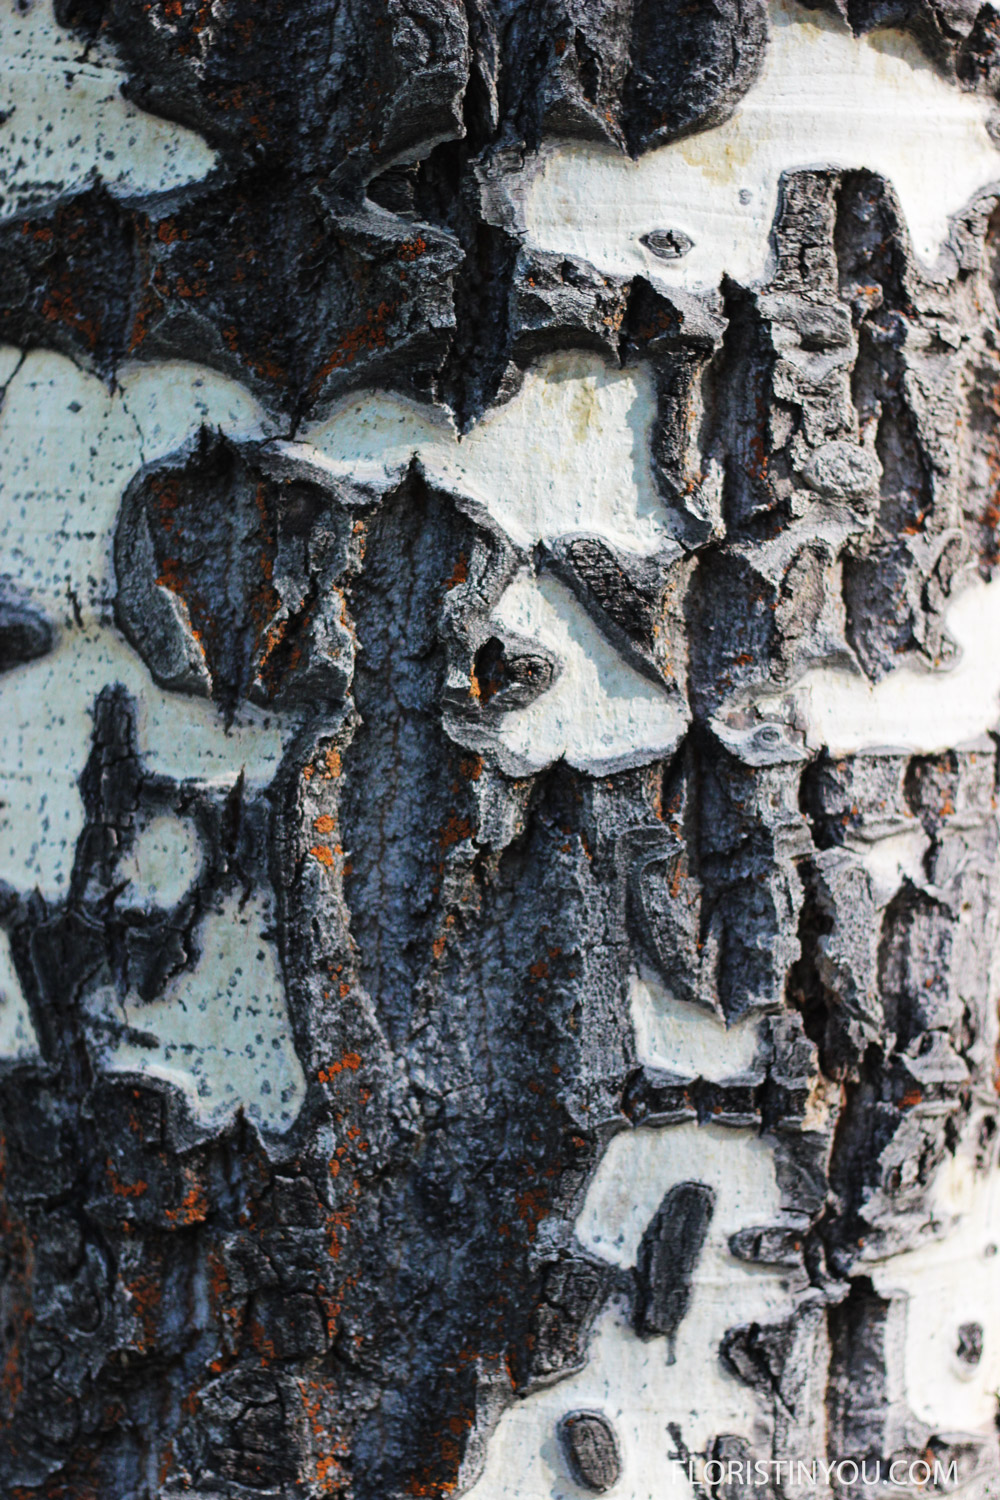 The aspen bark is a great study in black &white contrasts.